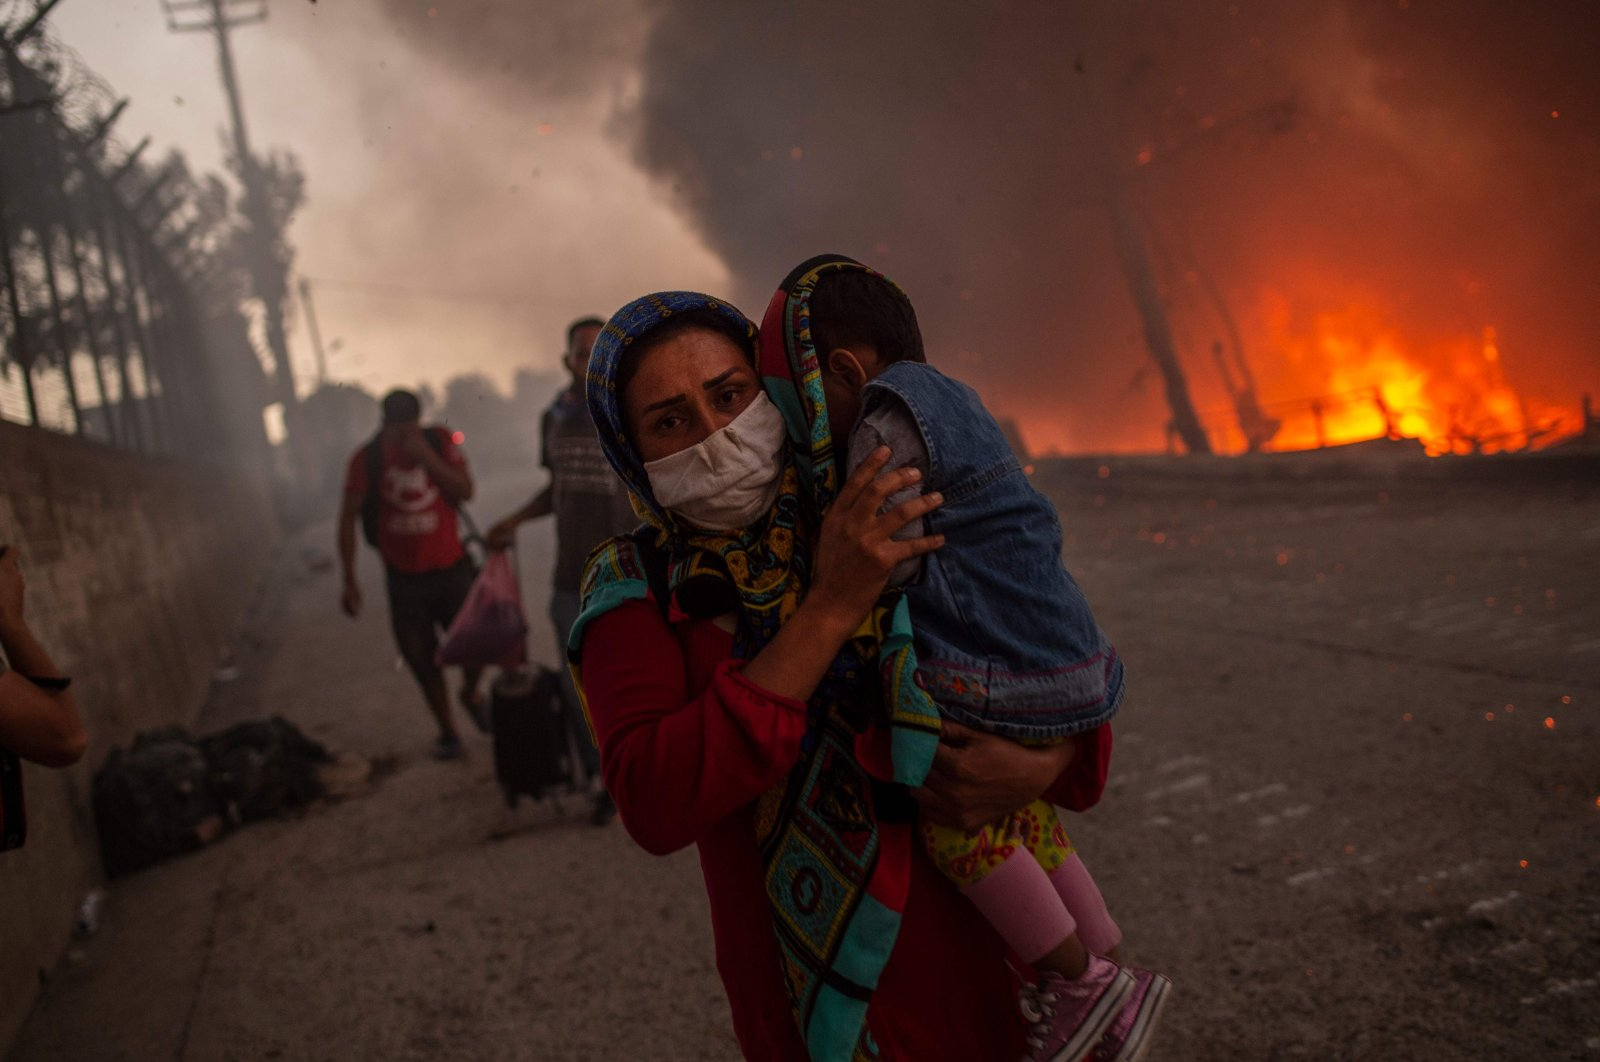 A woman carries a child past flames after a major fire broke out in the Moria migrants camp on the Aegean island of Lesbos, Greece, Sept. 9, 2020. (AFP Photo)